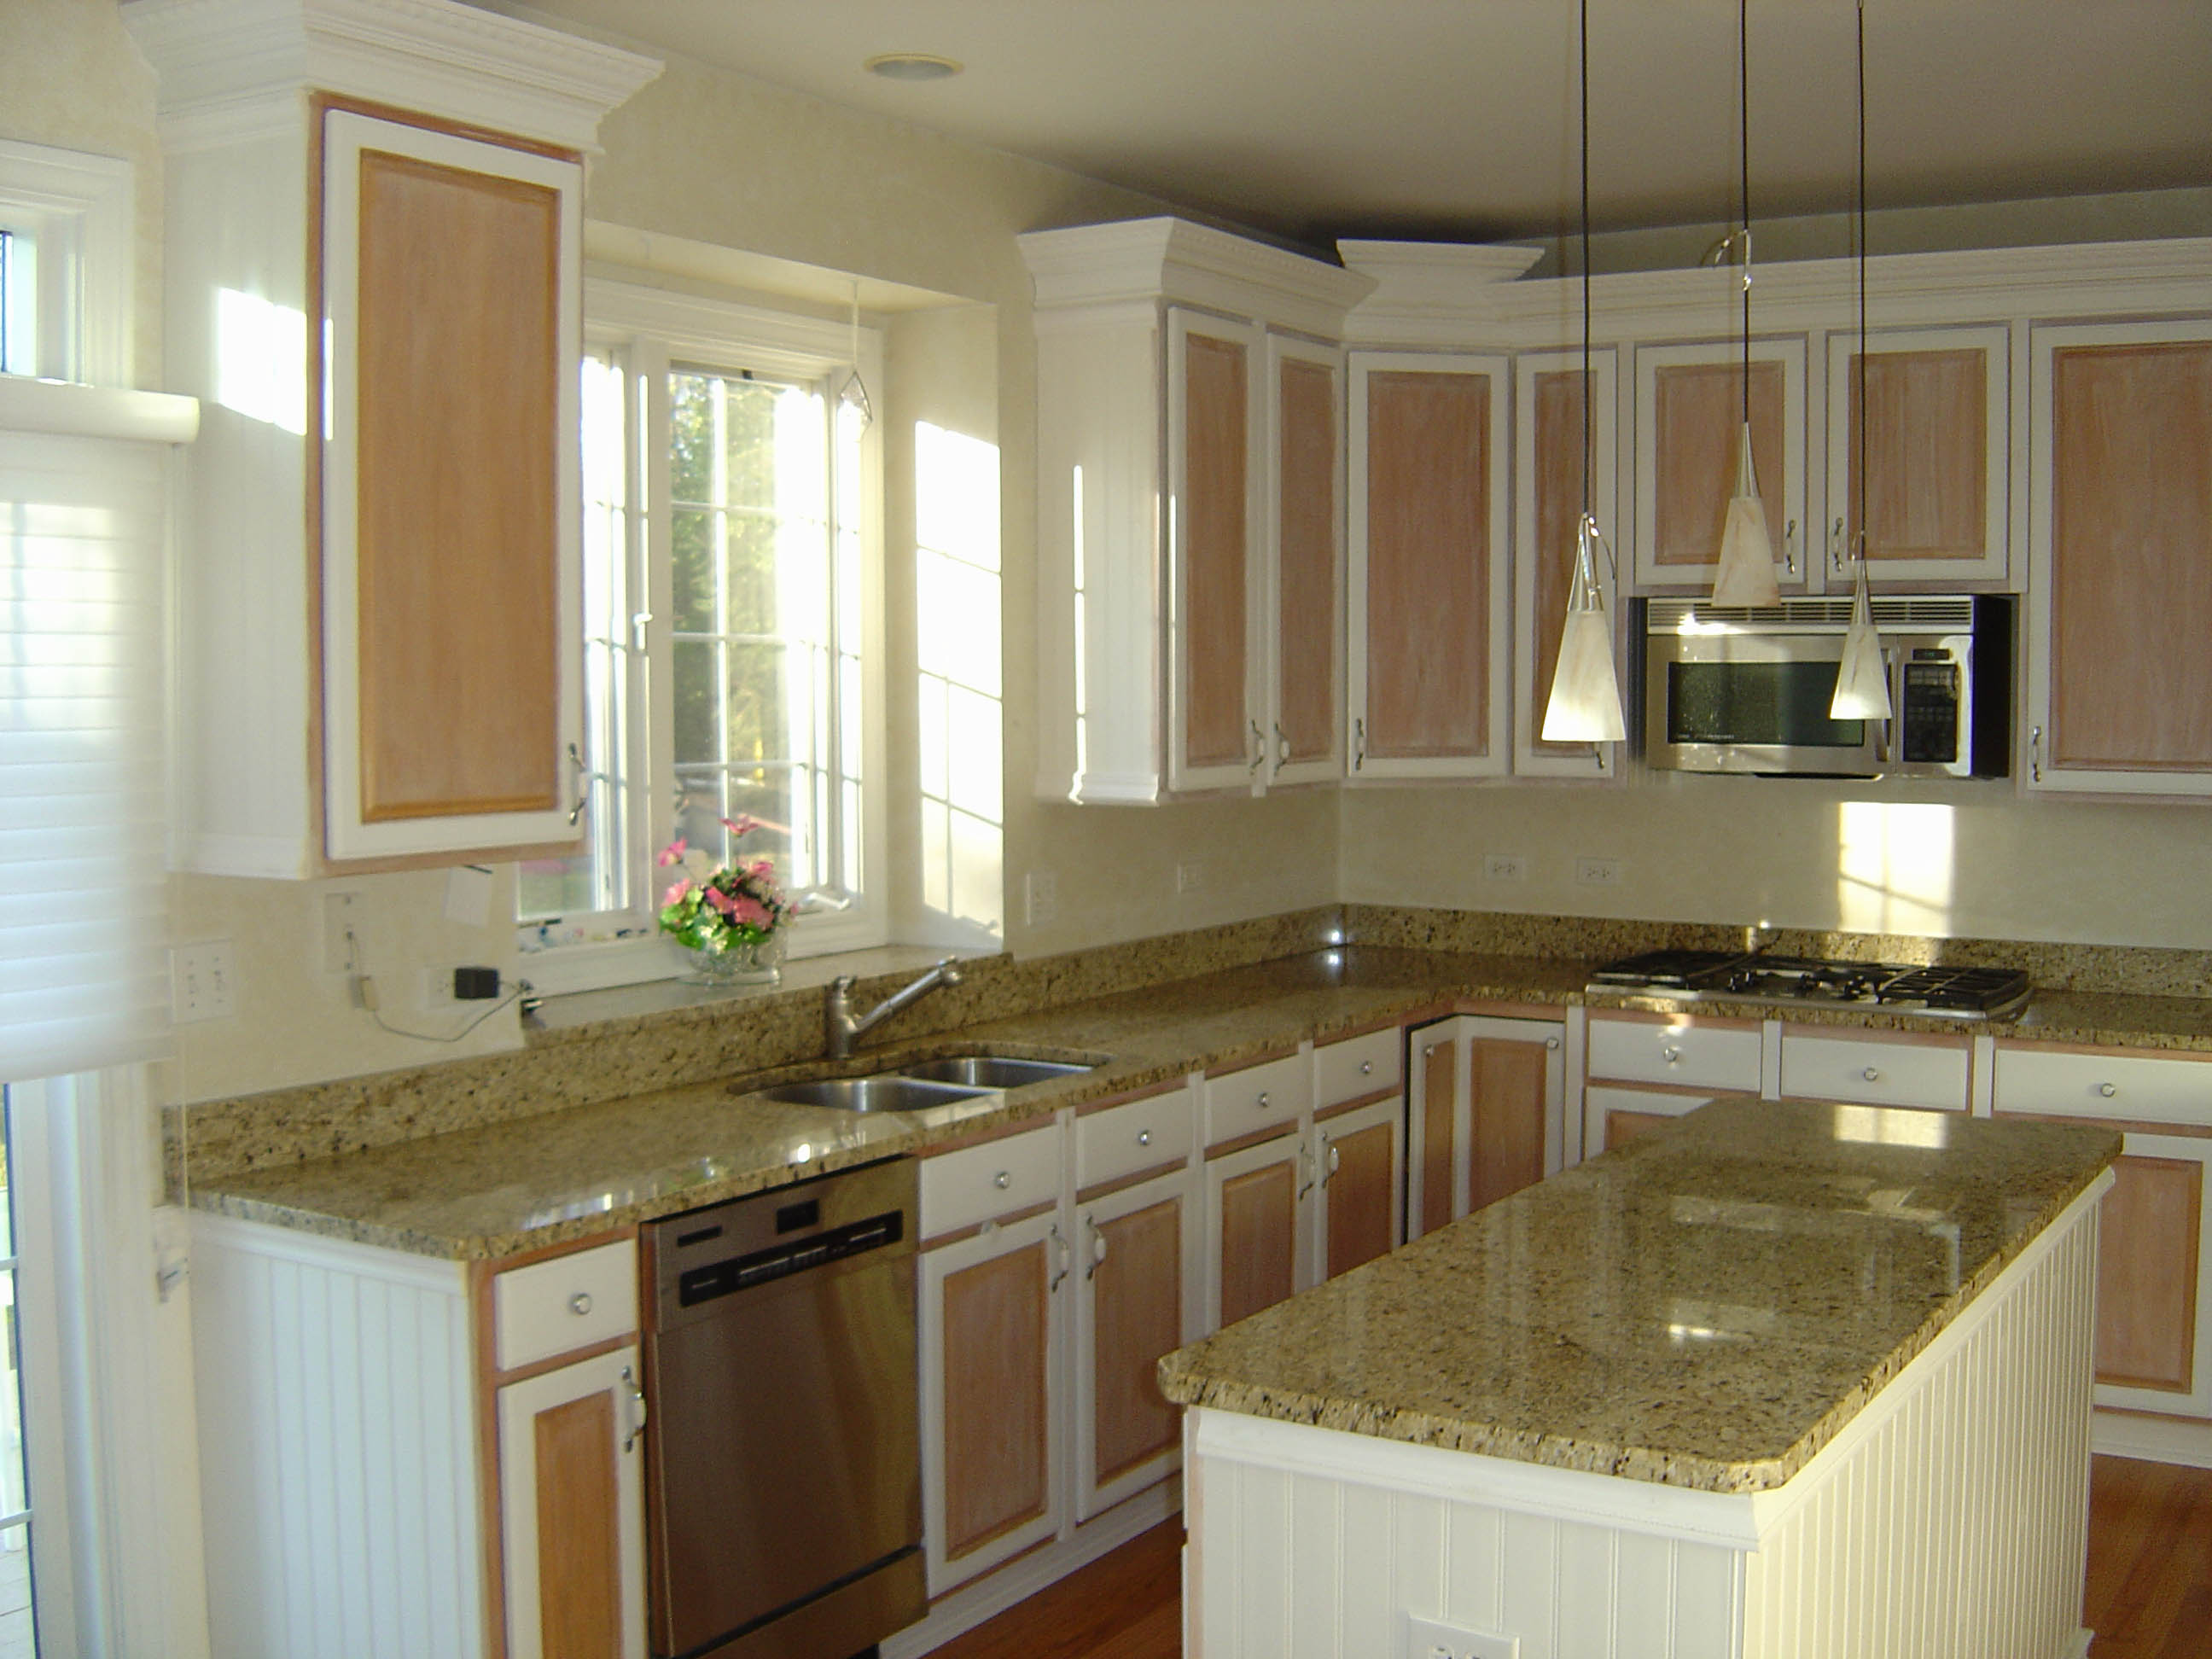 How Much Does Cabinet Refacing Cost? - Affordable Cabinet Refacing How Much Do New Kitchen Cabinets Cost on kitchen cabinets per linear foot cost, cabinet refacing cost, kitchen cabinet door replacement cost,